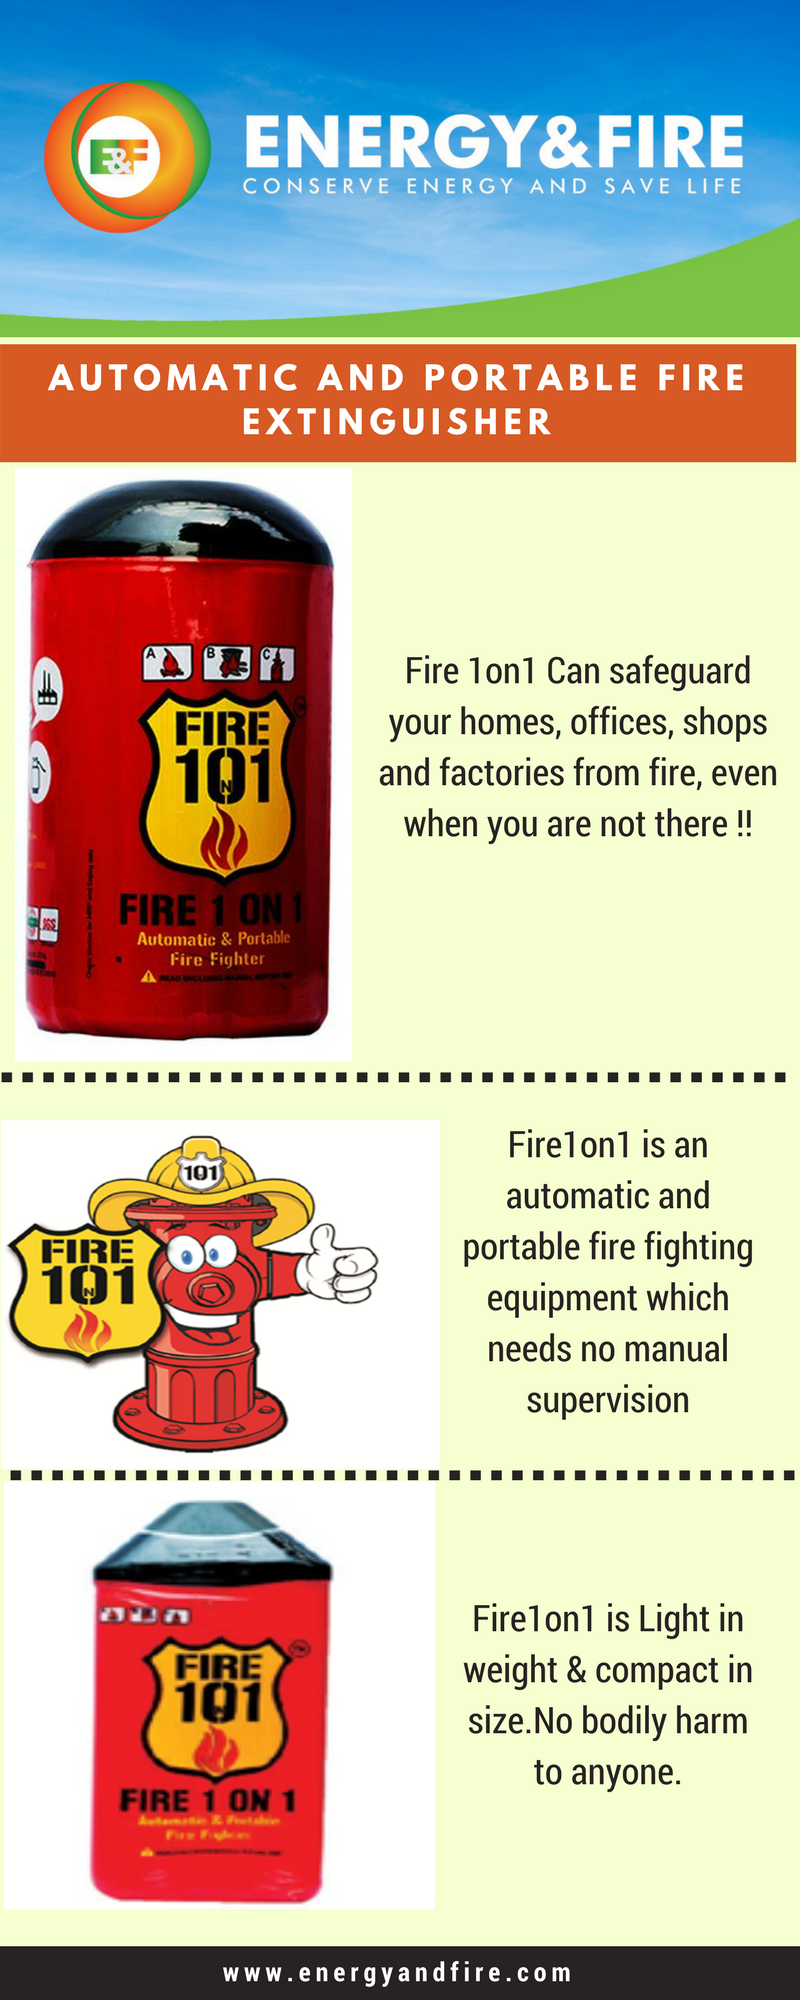 View How Automatic Fire Extinguishers